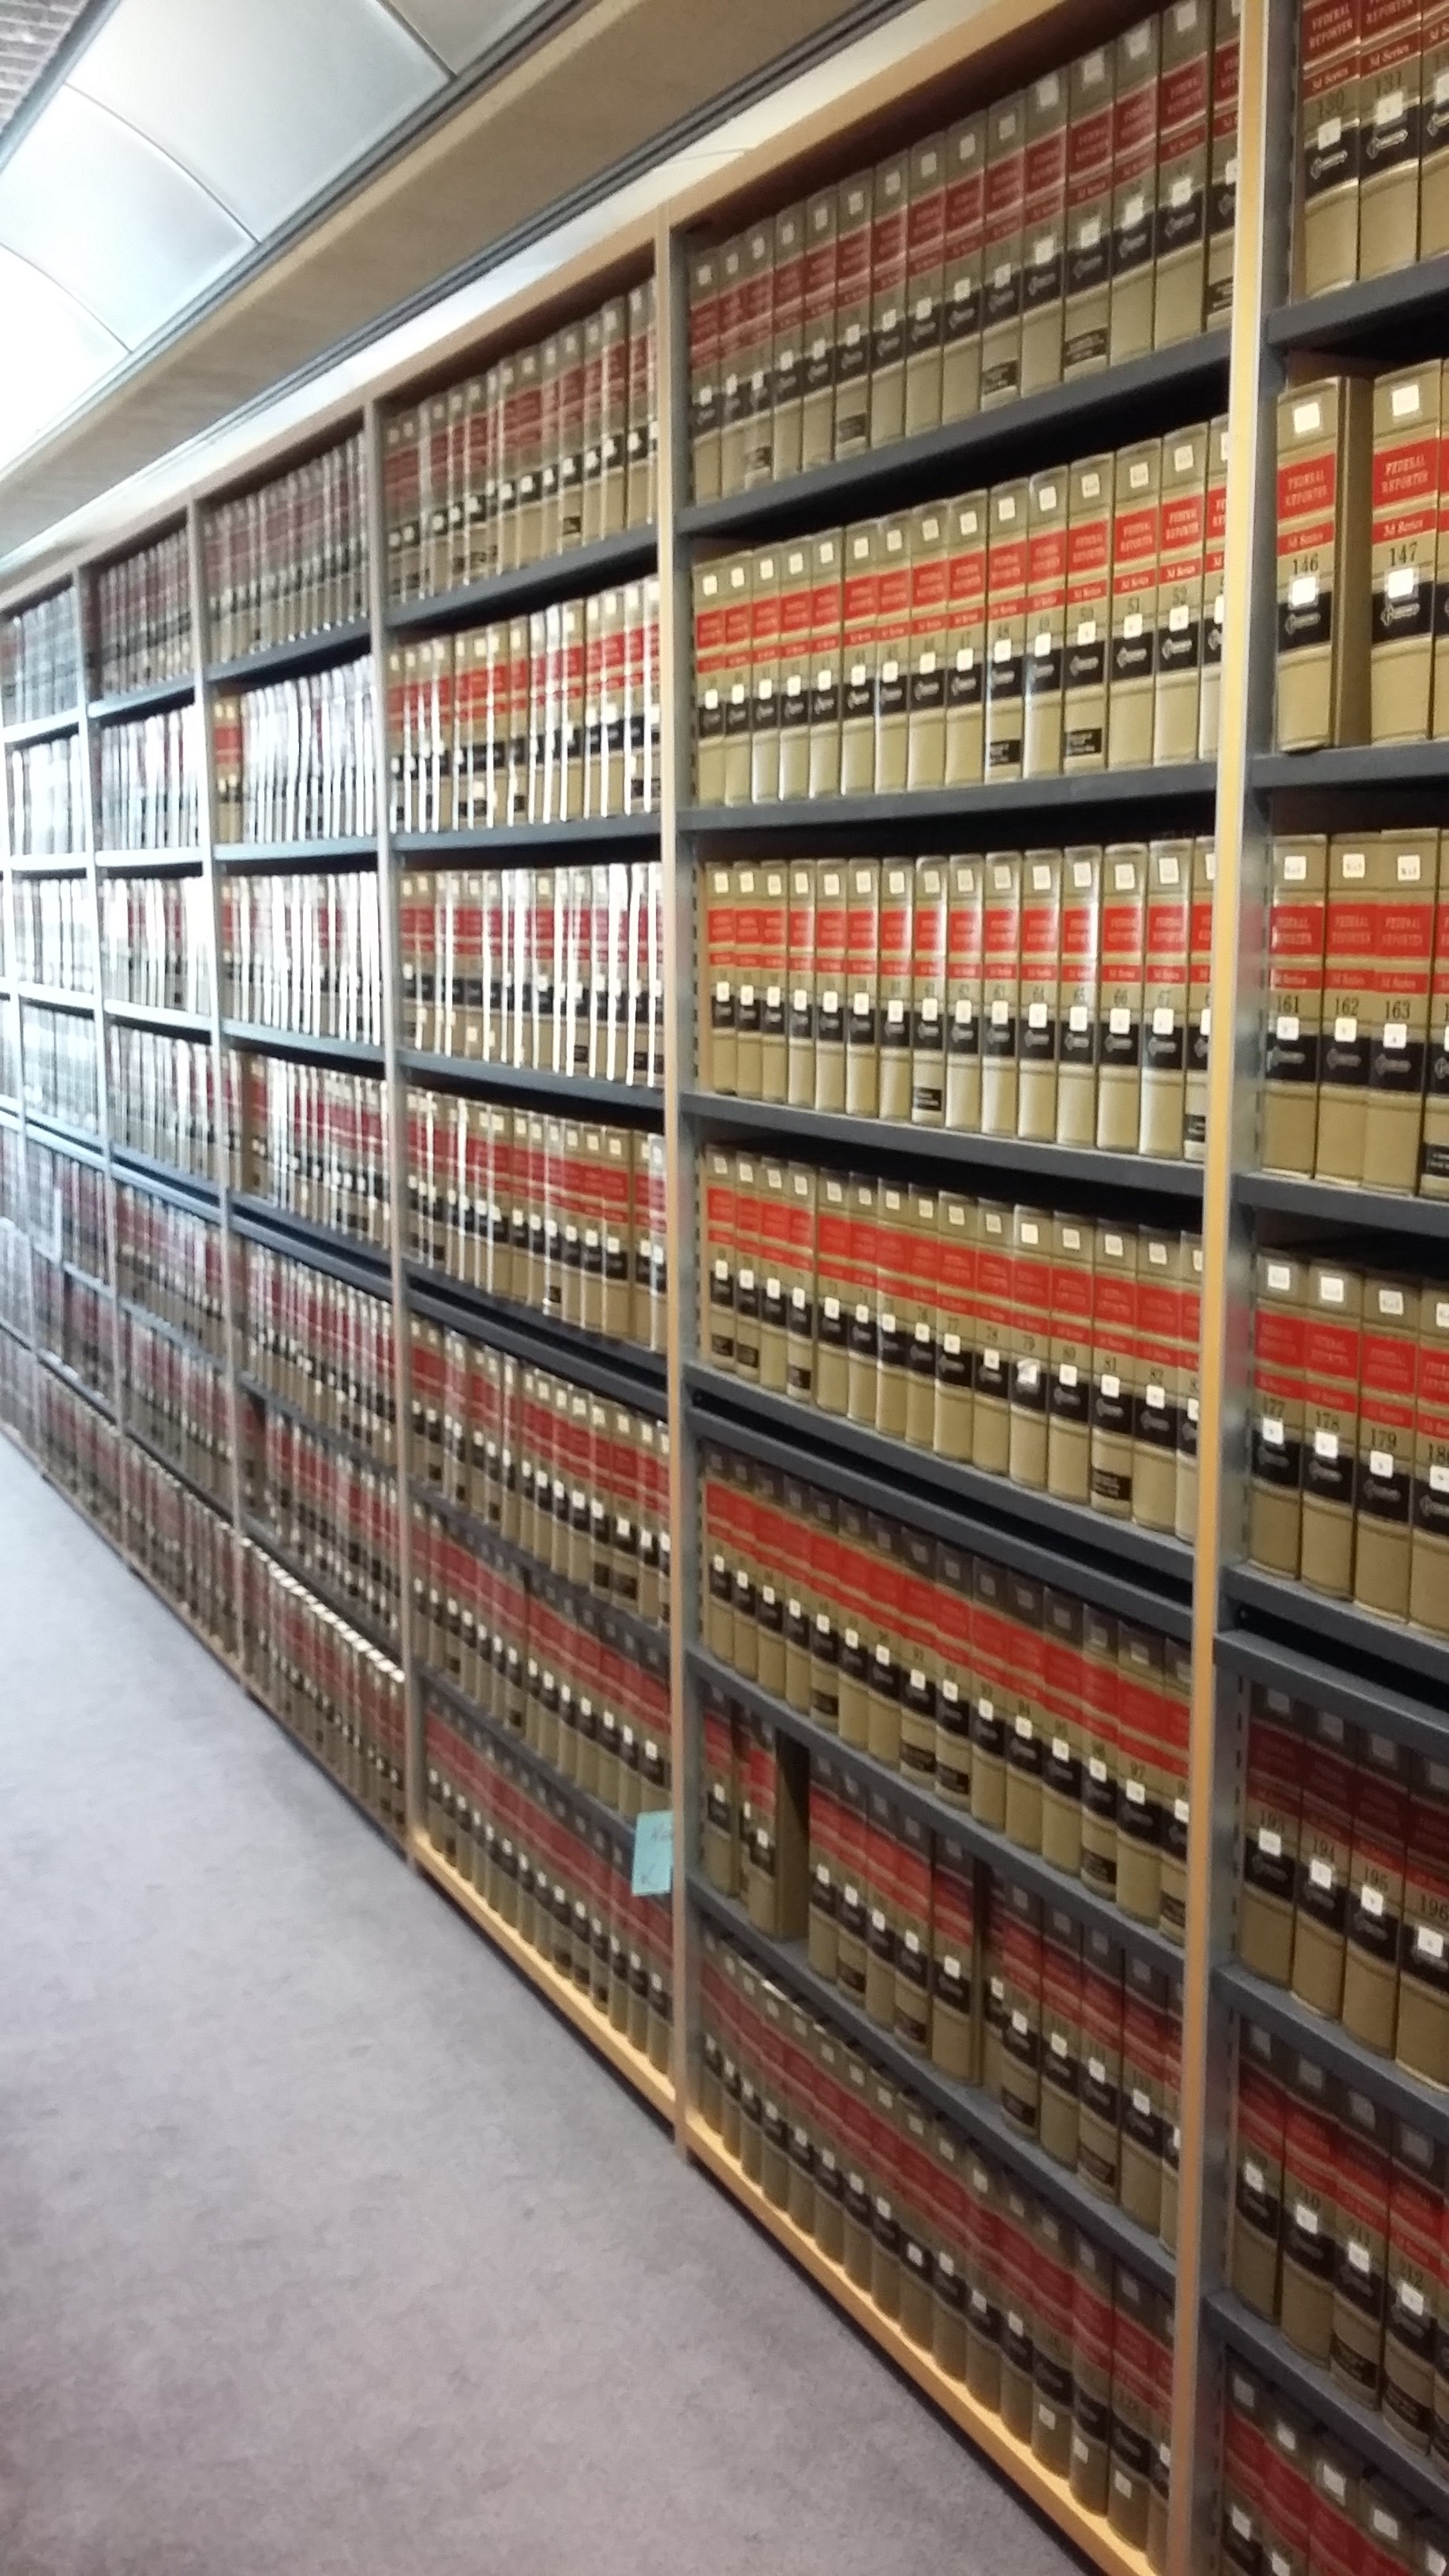 A view of stacks of American Reporter volumes, which are light brown, red and black, with gold lettering, on shelves in the Squire Law Library stretching into the distance.